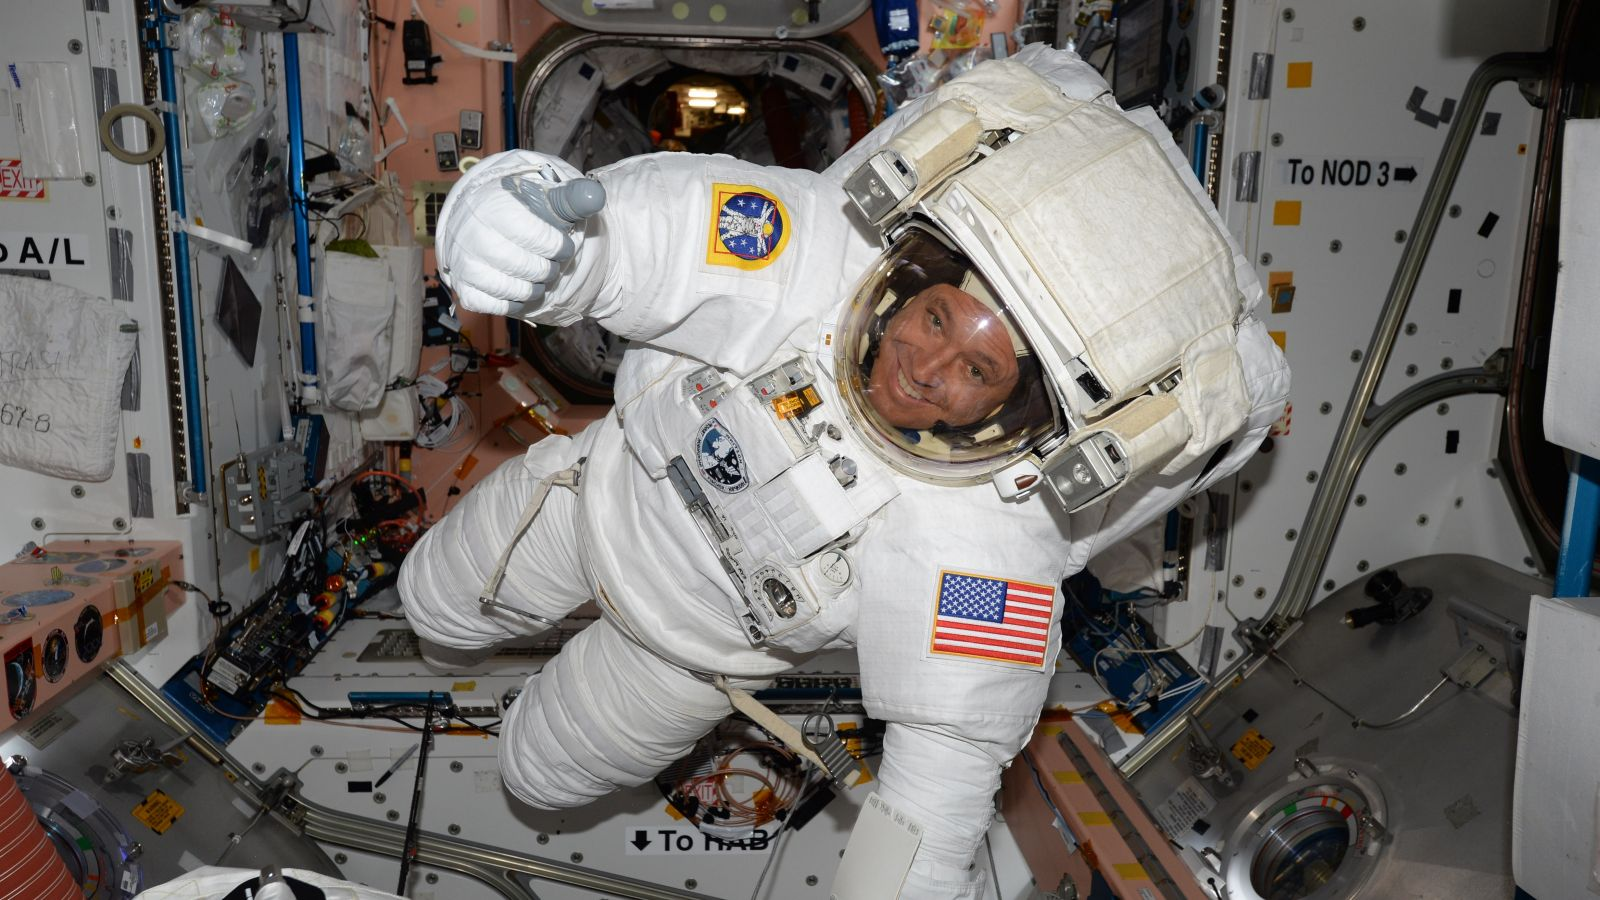 U.S.  astronauts conduct 200th spacewalk